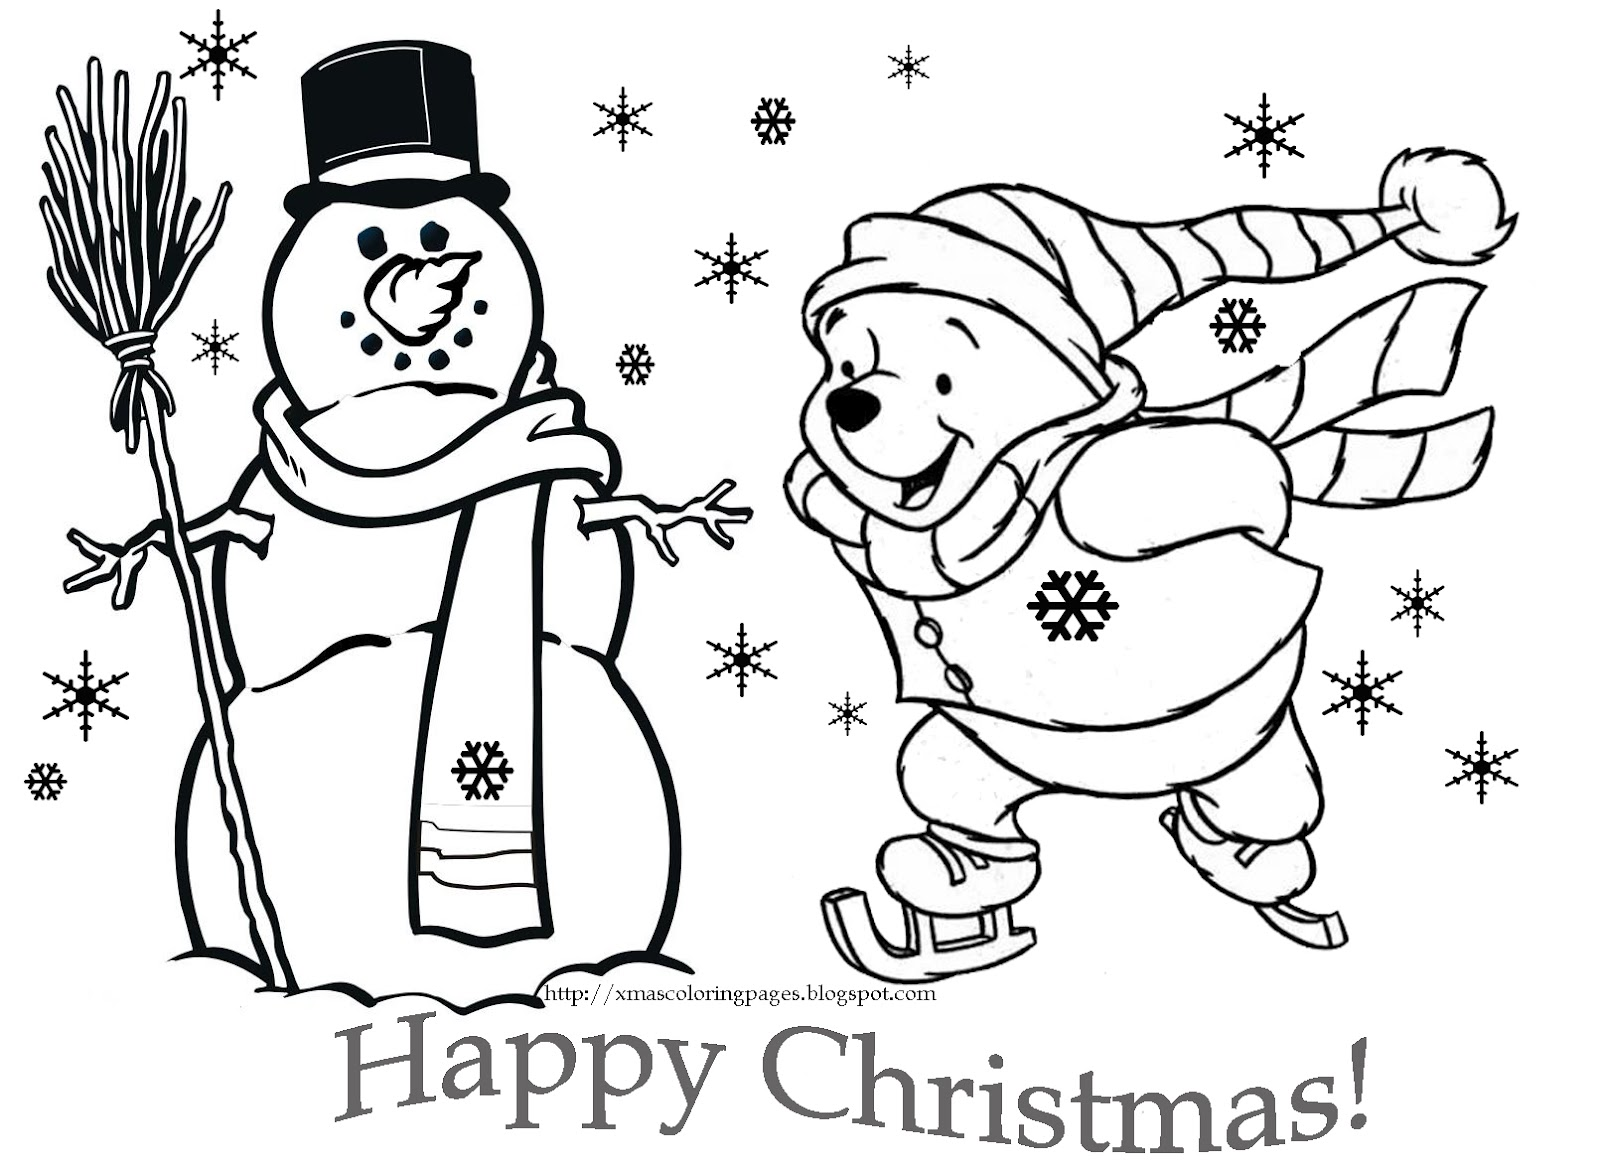 disney christmas coloring pages dumbo coloring pages.html